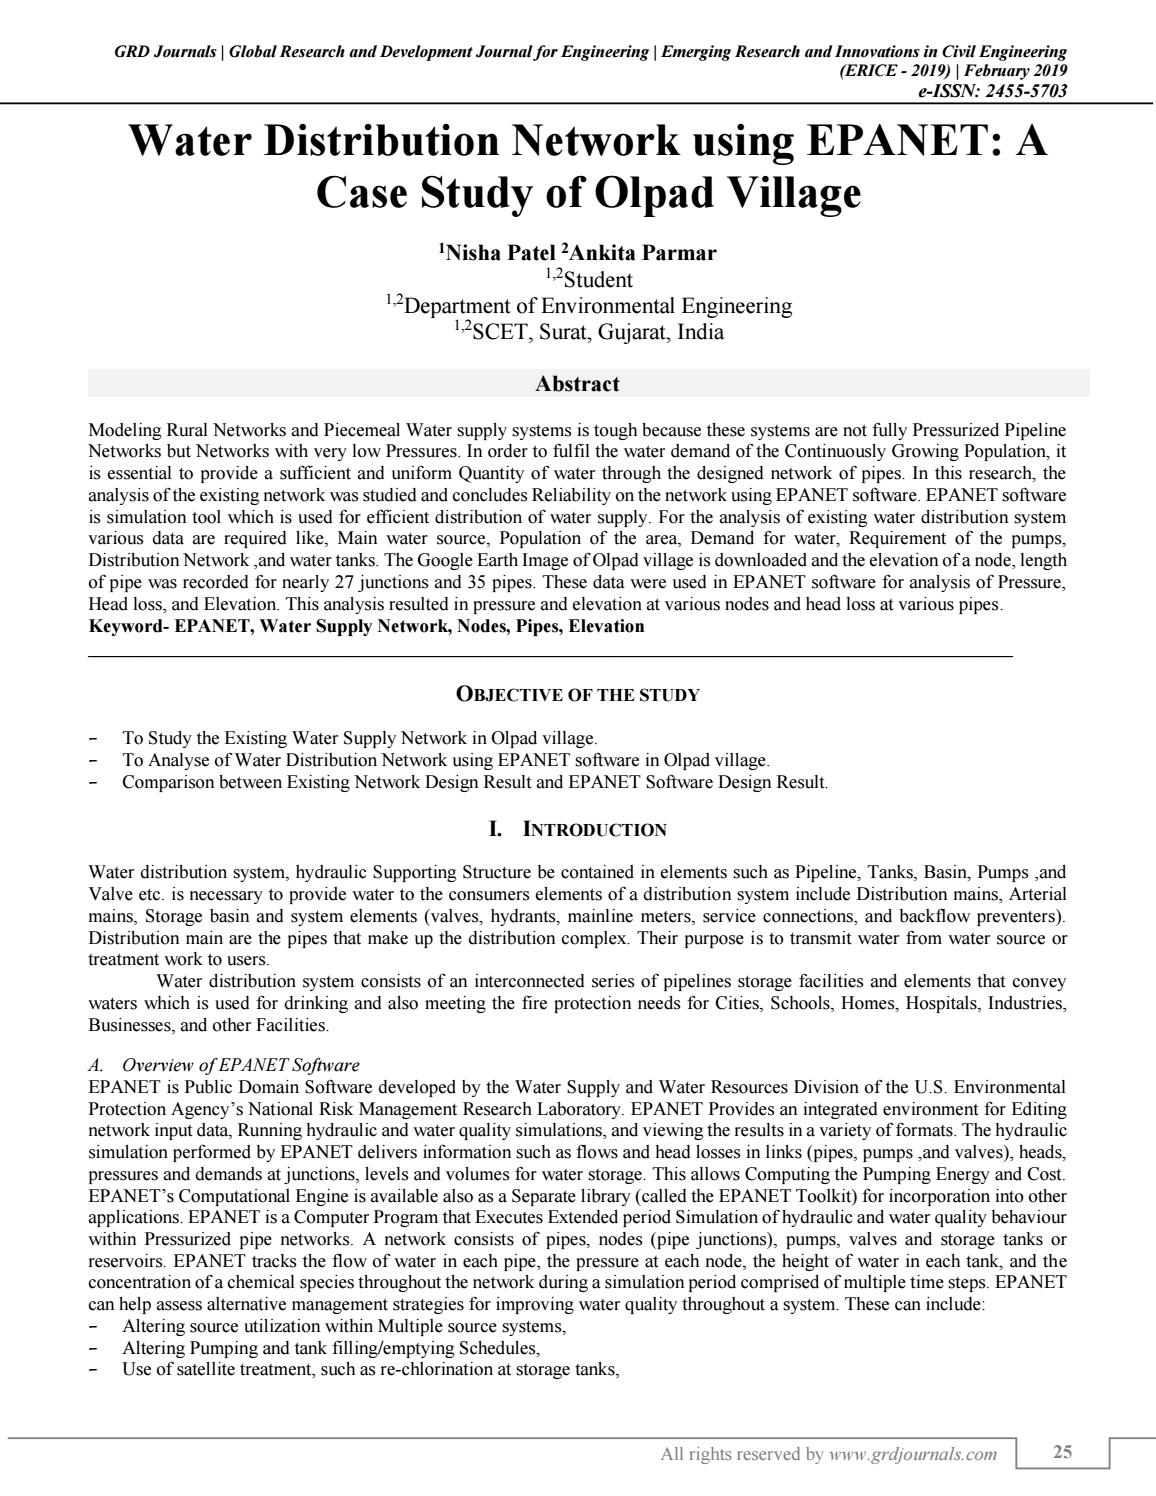 Water Distribution Network Using Epanet A Case Study Of Olpad Village By Grd Journals Issuu